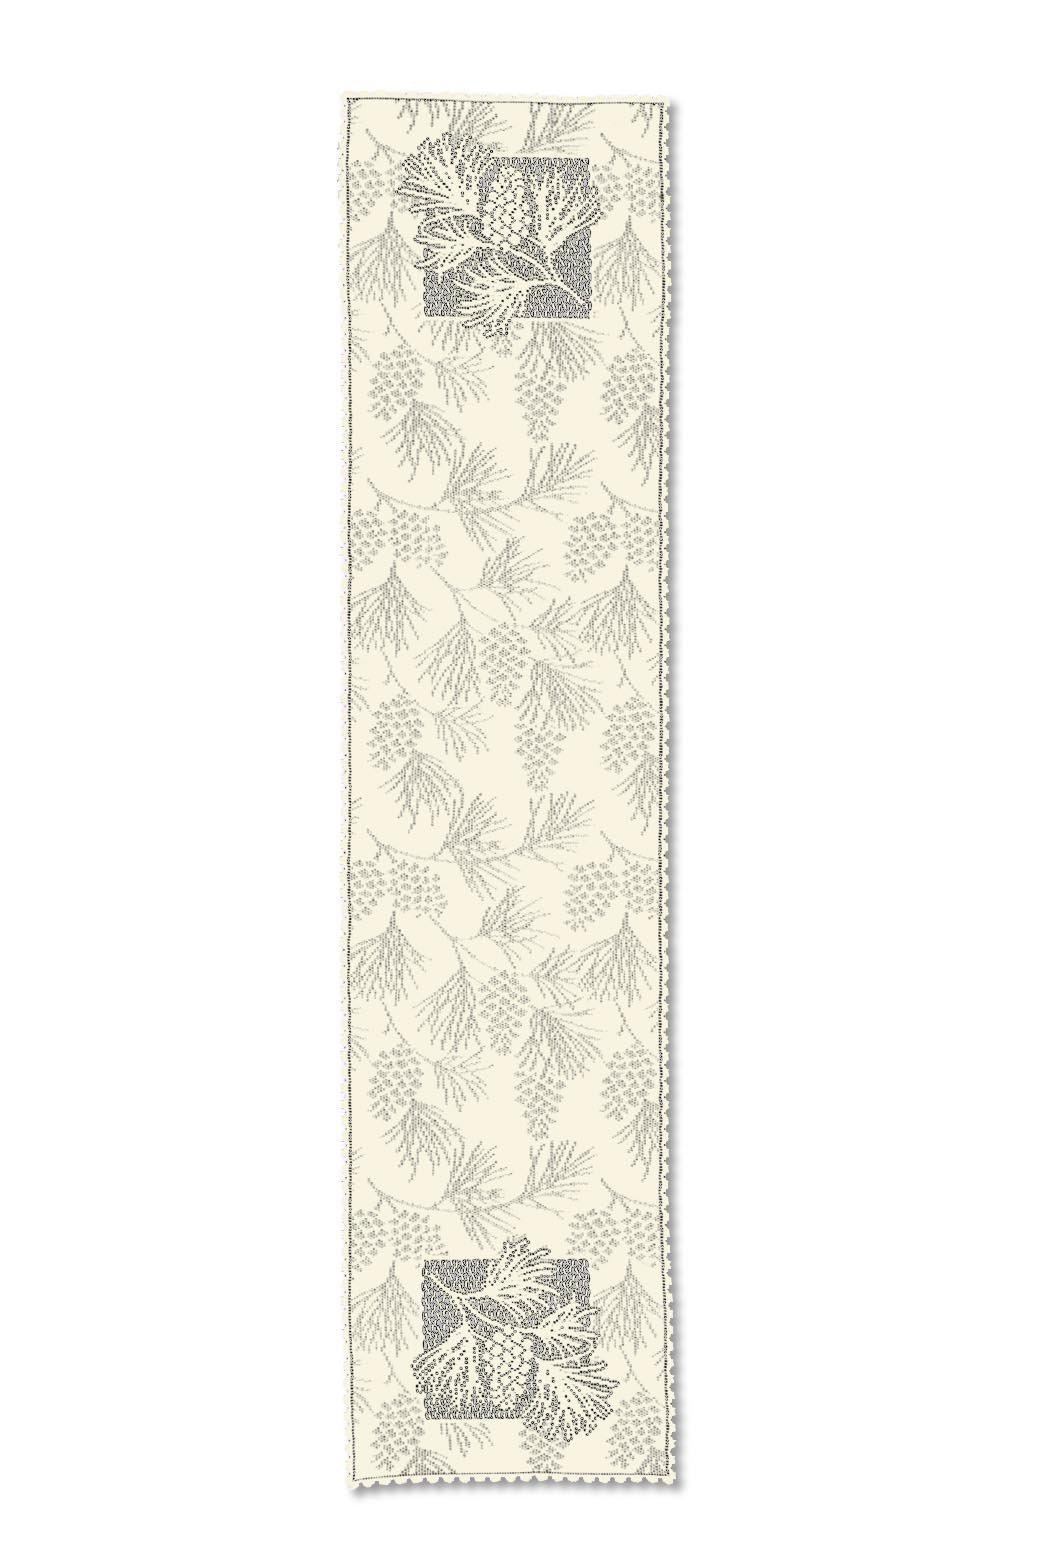 Heritage Lace Woodland 14-Inch by 60-Inch Runner, Ecru